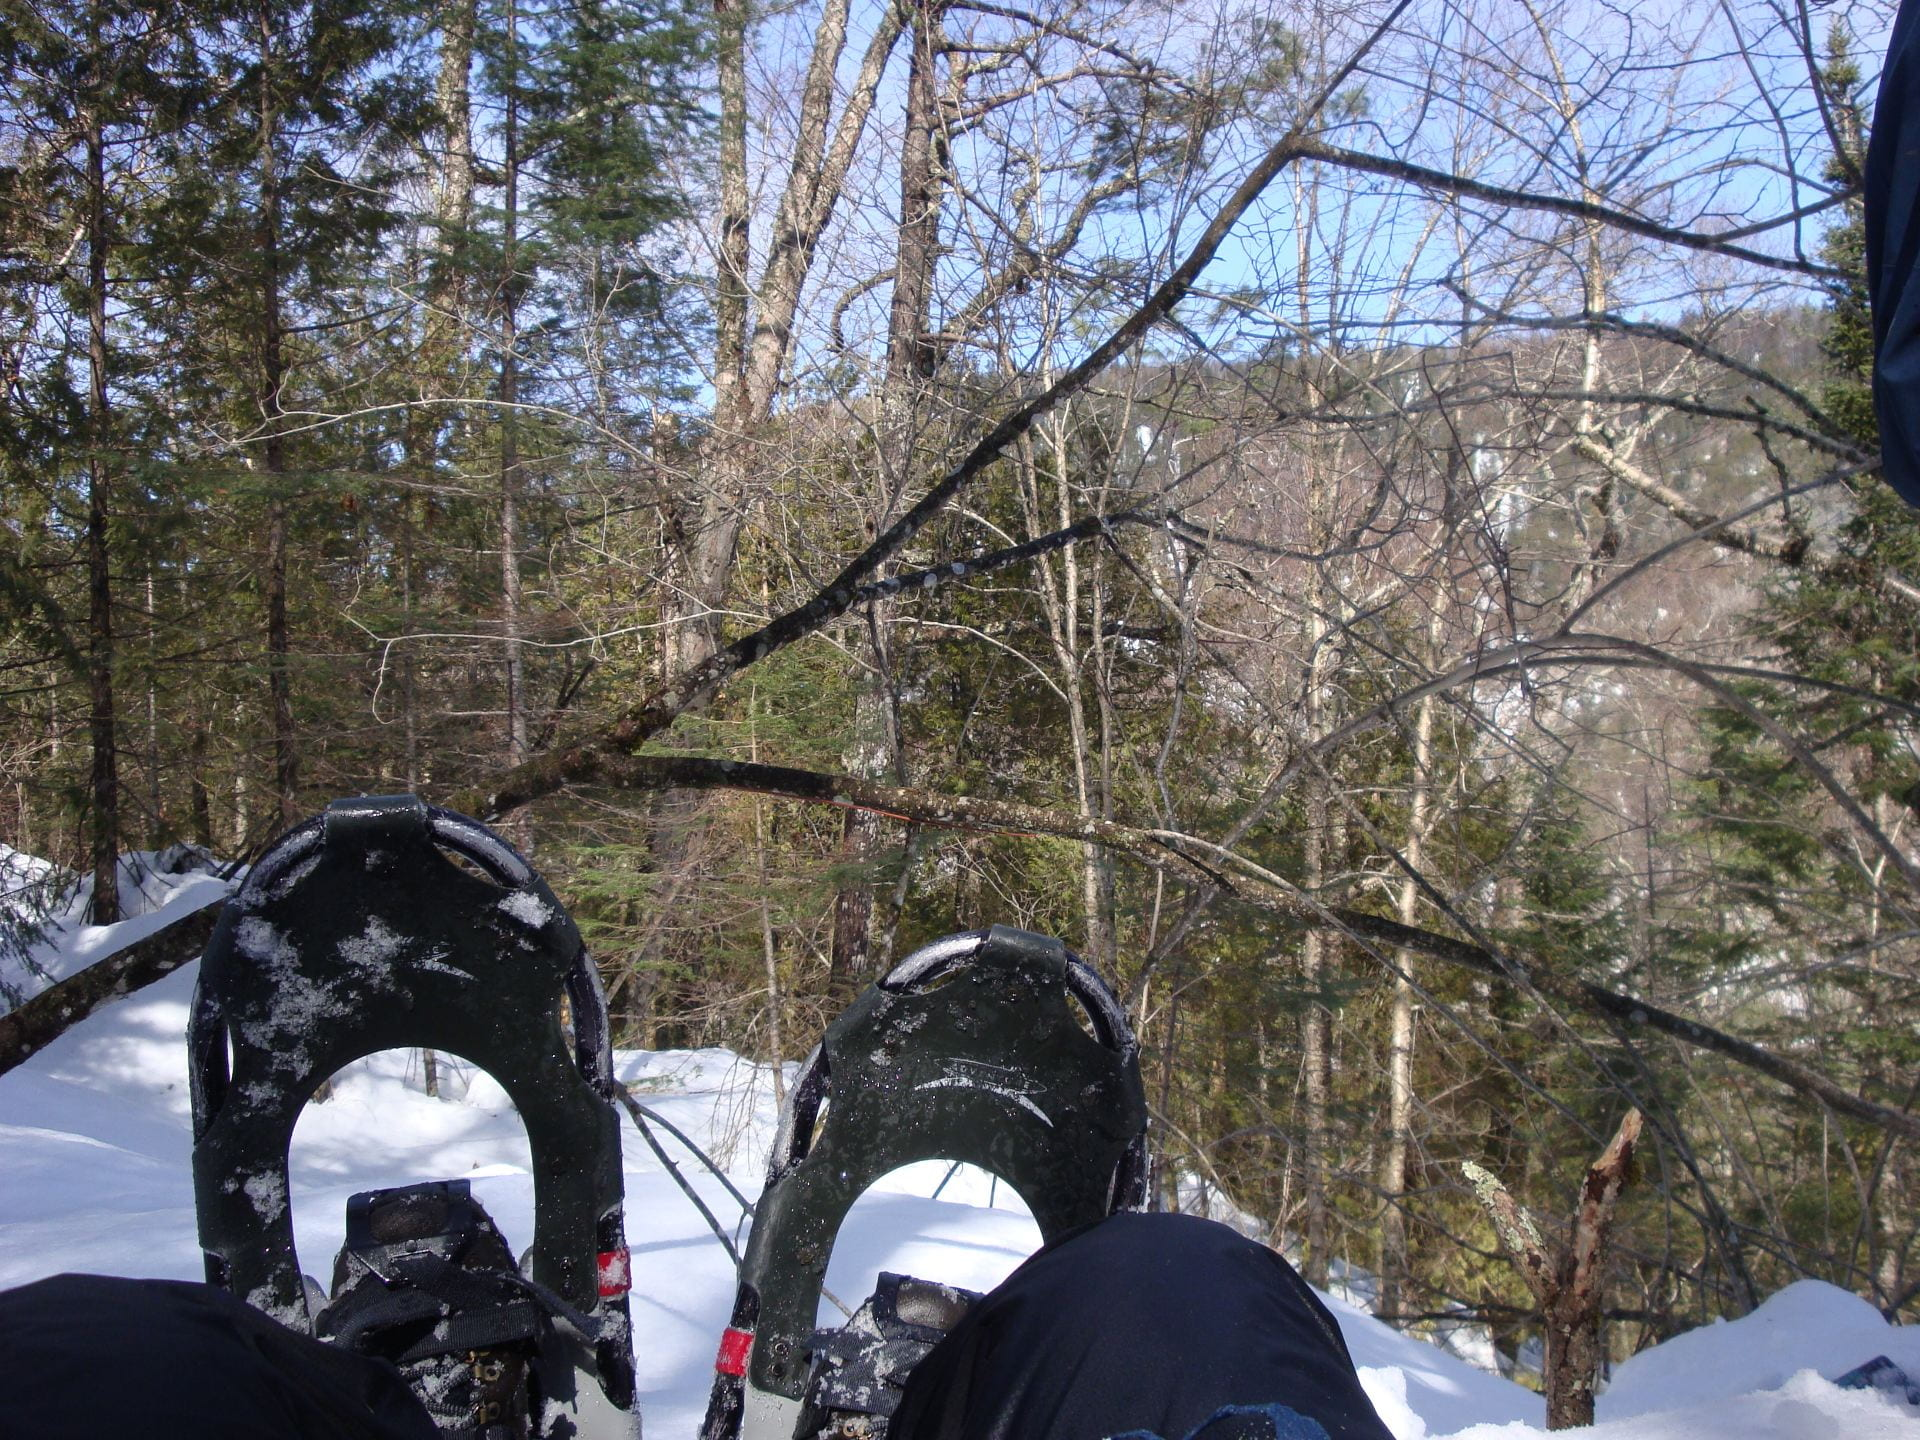 A person in snowshoes sitting on a snowy hill on a sunny day.